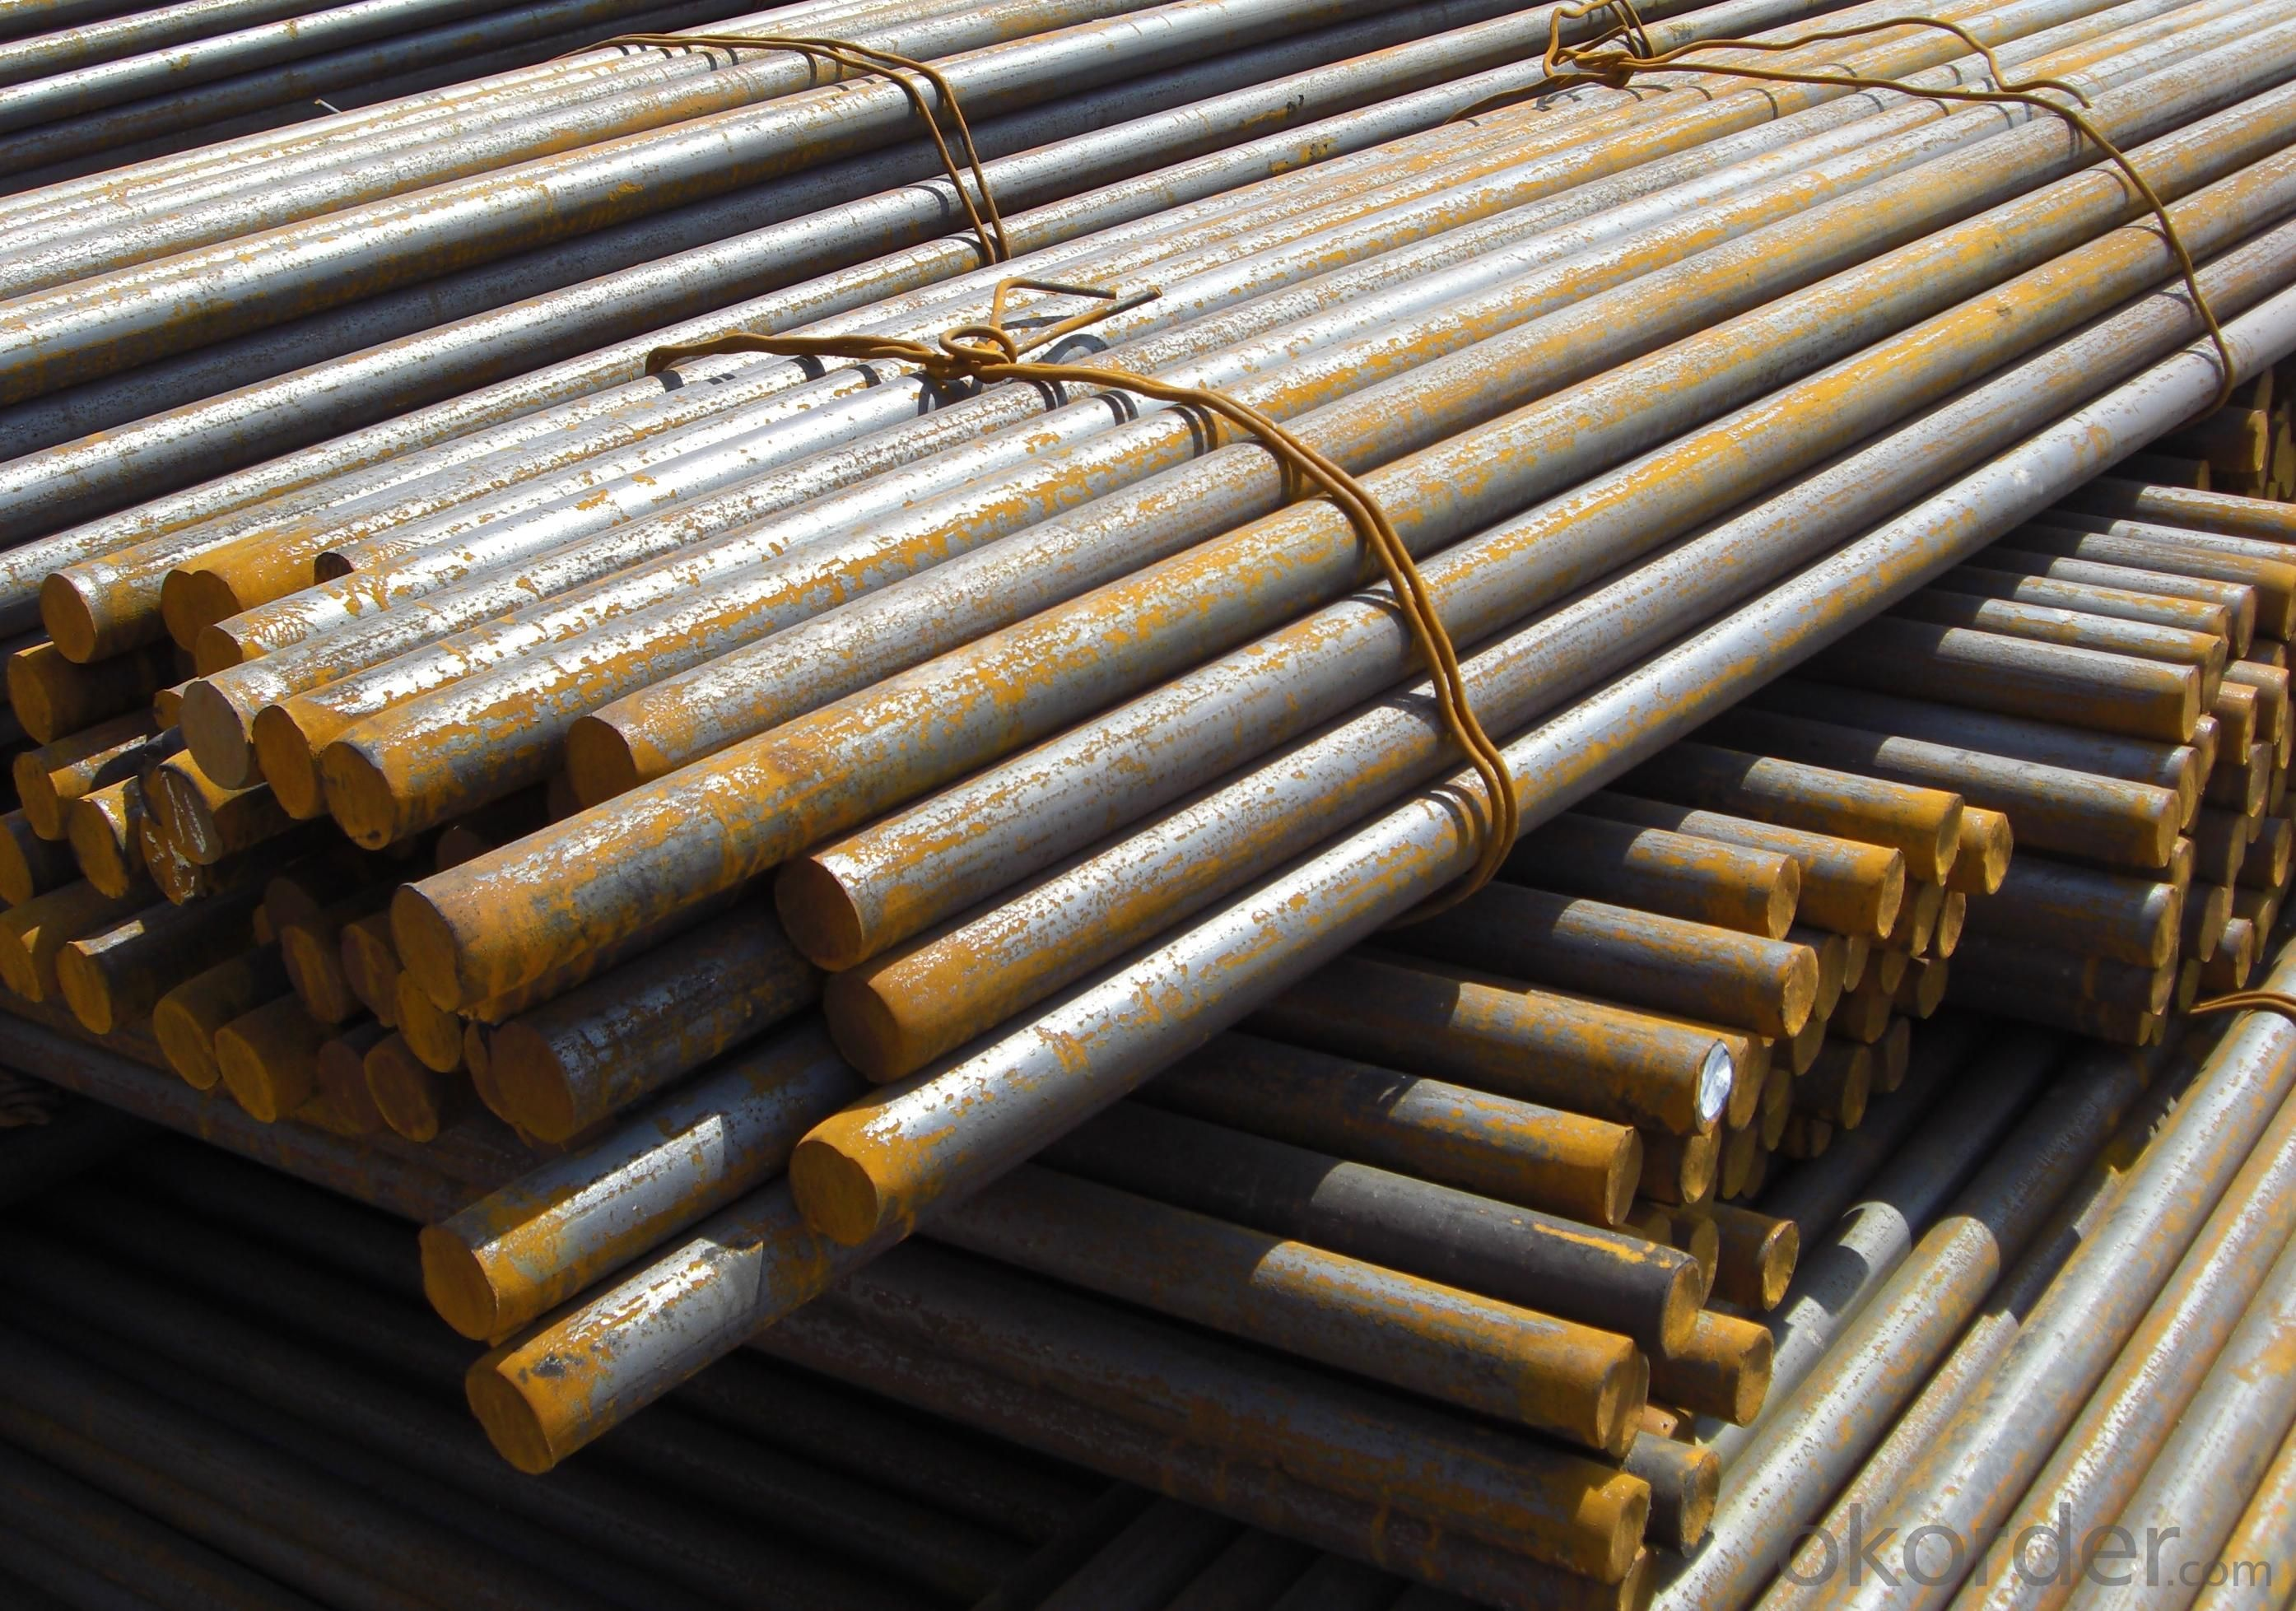 Hot Rolled Structural Steel Round Bar 25MoCr4/1.7325